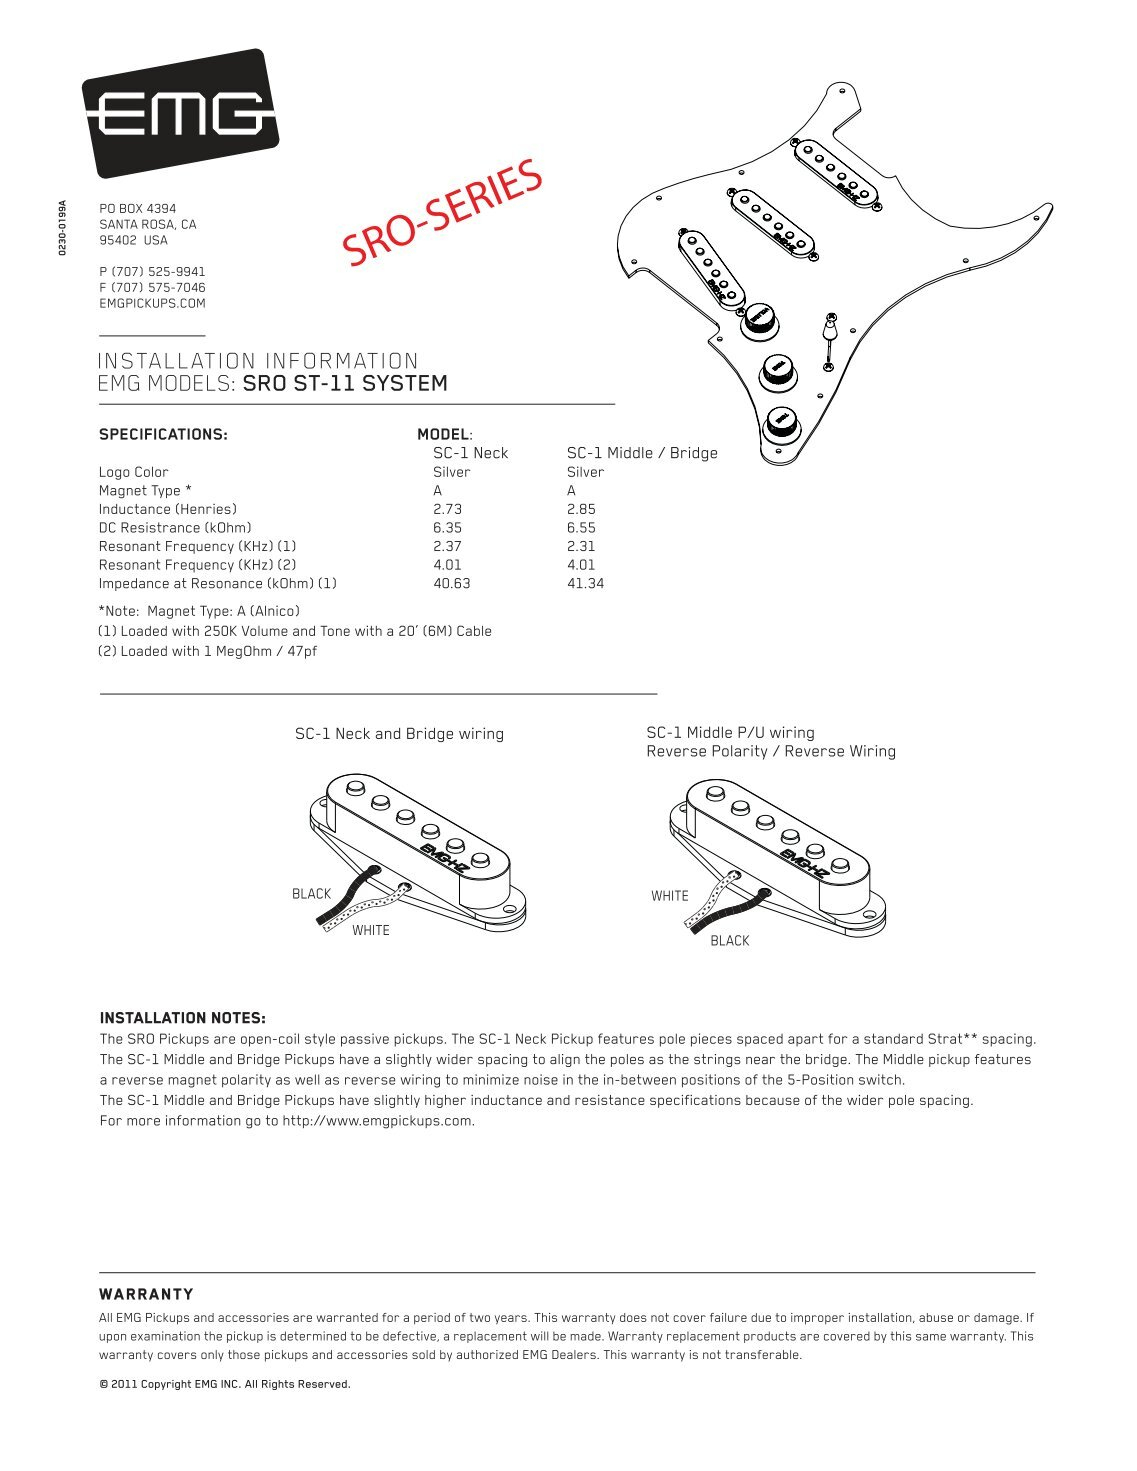 Guitar Wiring Diagrams Ssh Emg Diagram Vtt Schematic Online U2022 Fat Strat